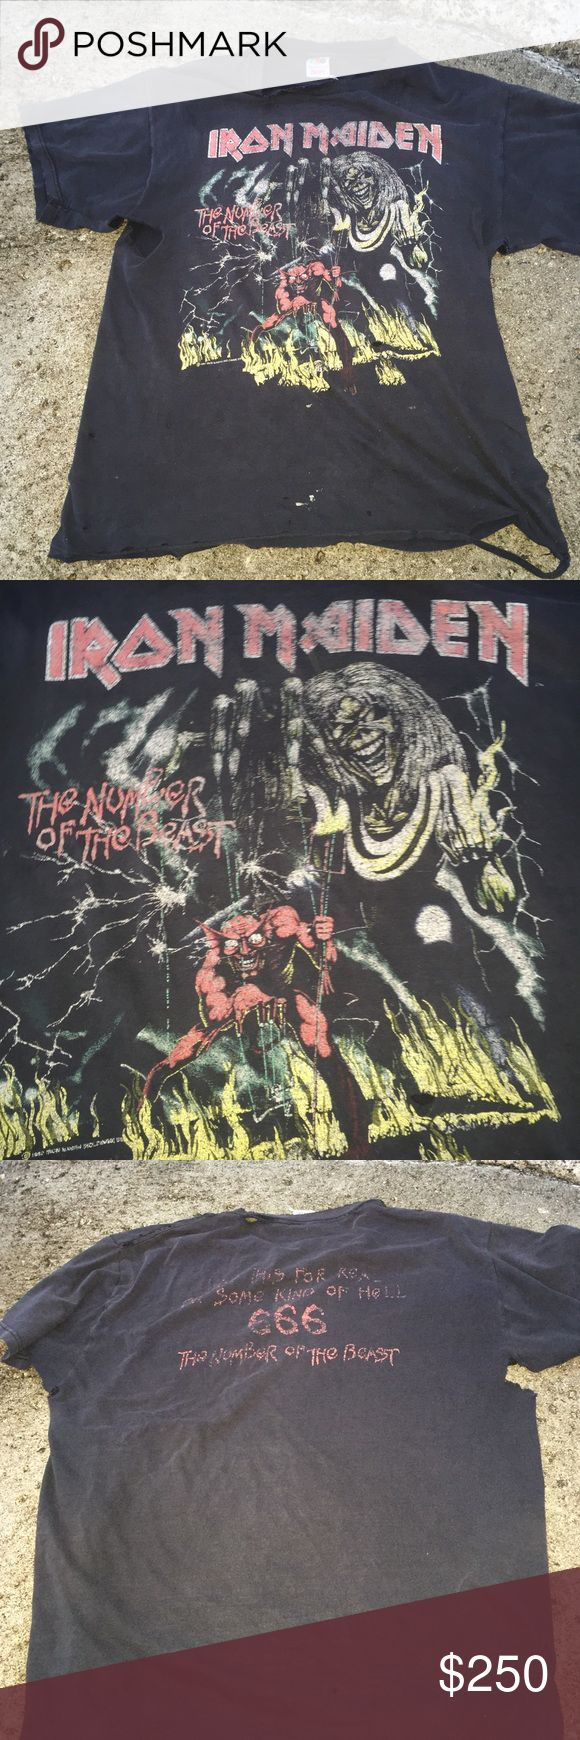 Vintage Iron Maiden T-shirt Large Super rare and vintage Iron Maiden Tee. Organically worn in. Make me an offer. Amazing vintage fit Tops Tees - Short Sleeve